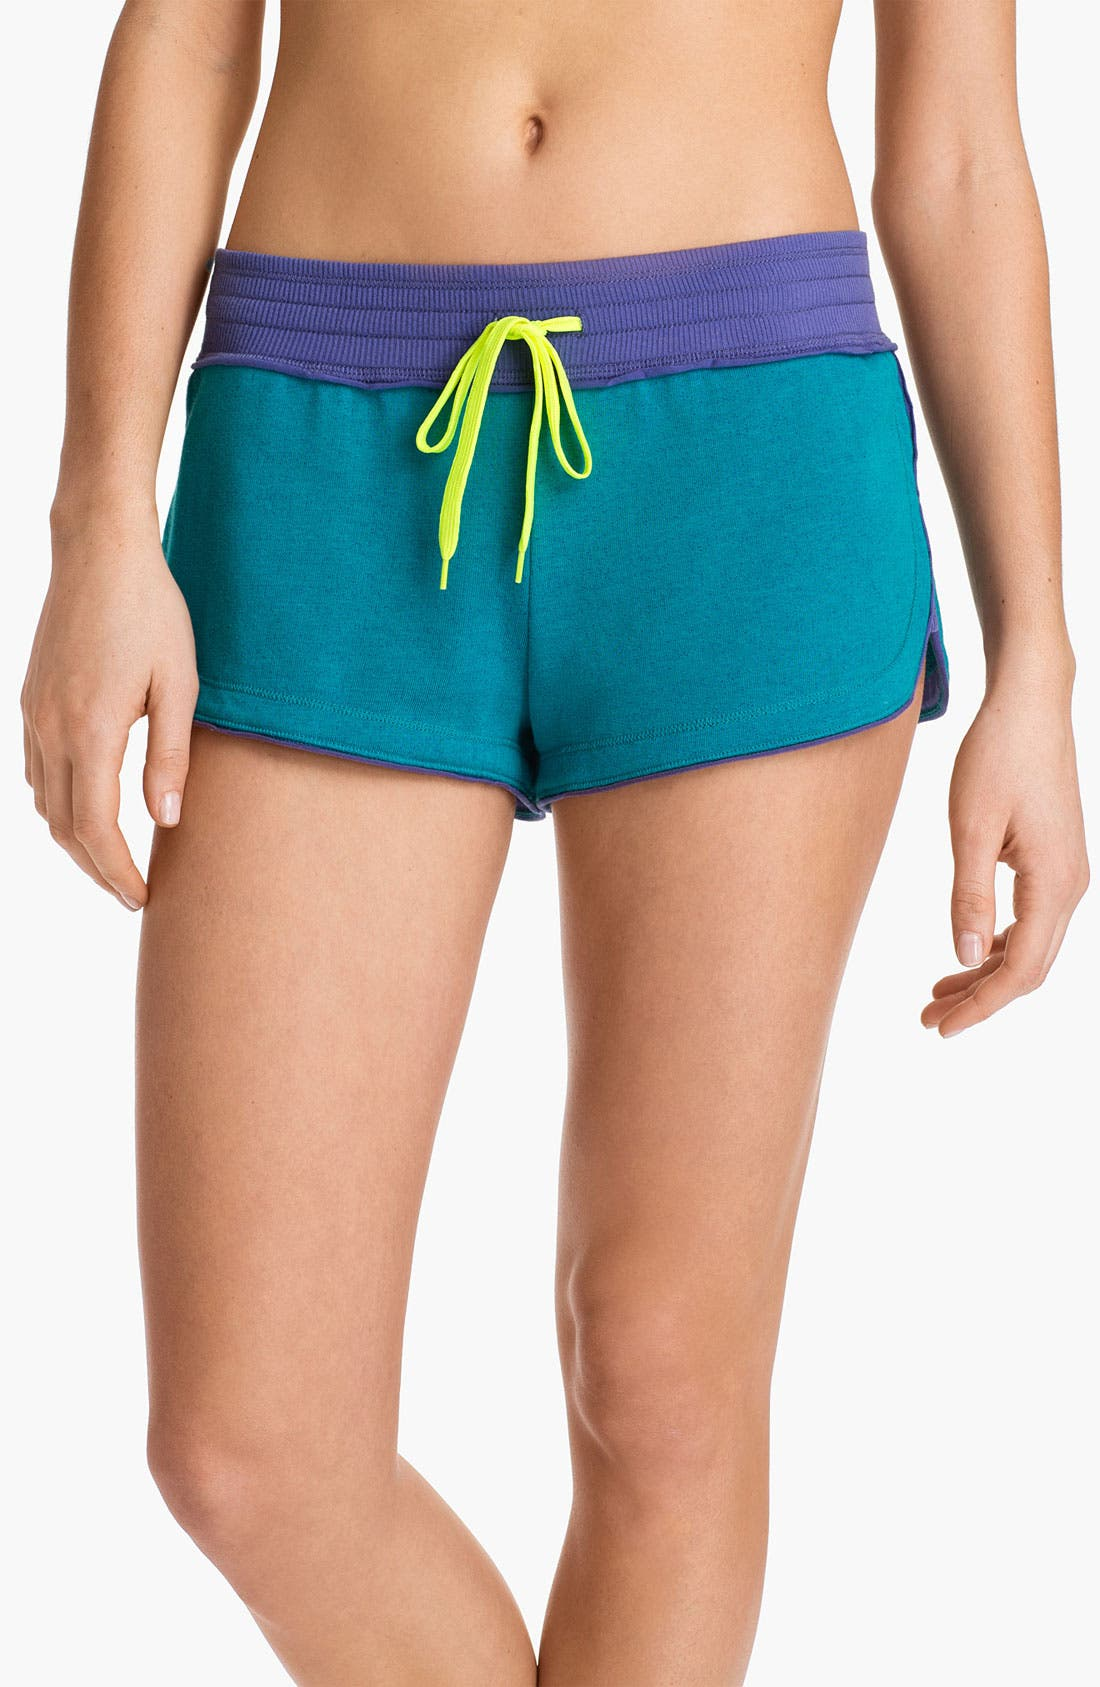 Alternate Image 1 Selected - Steve Madden 'Earn Your Stripes' Terry Lounge Shorts